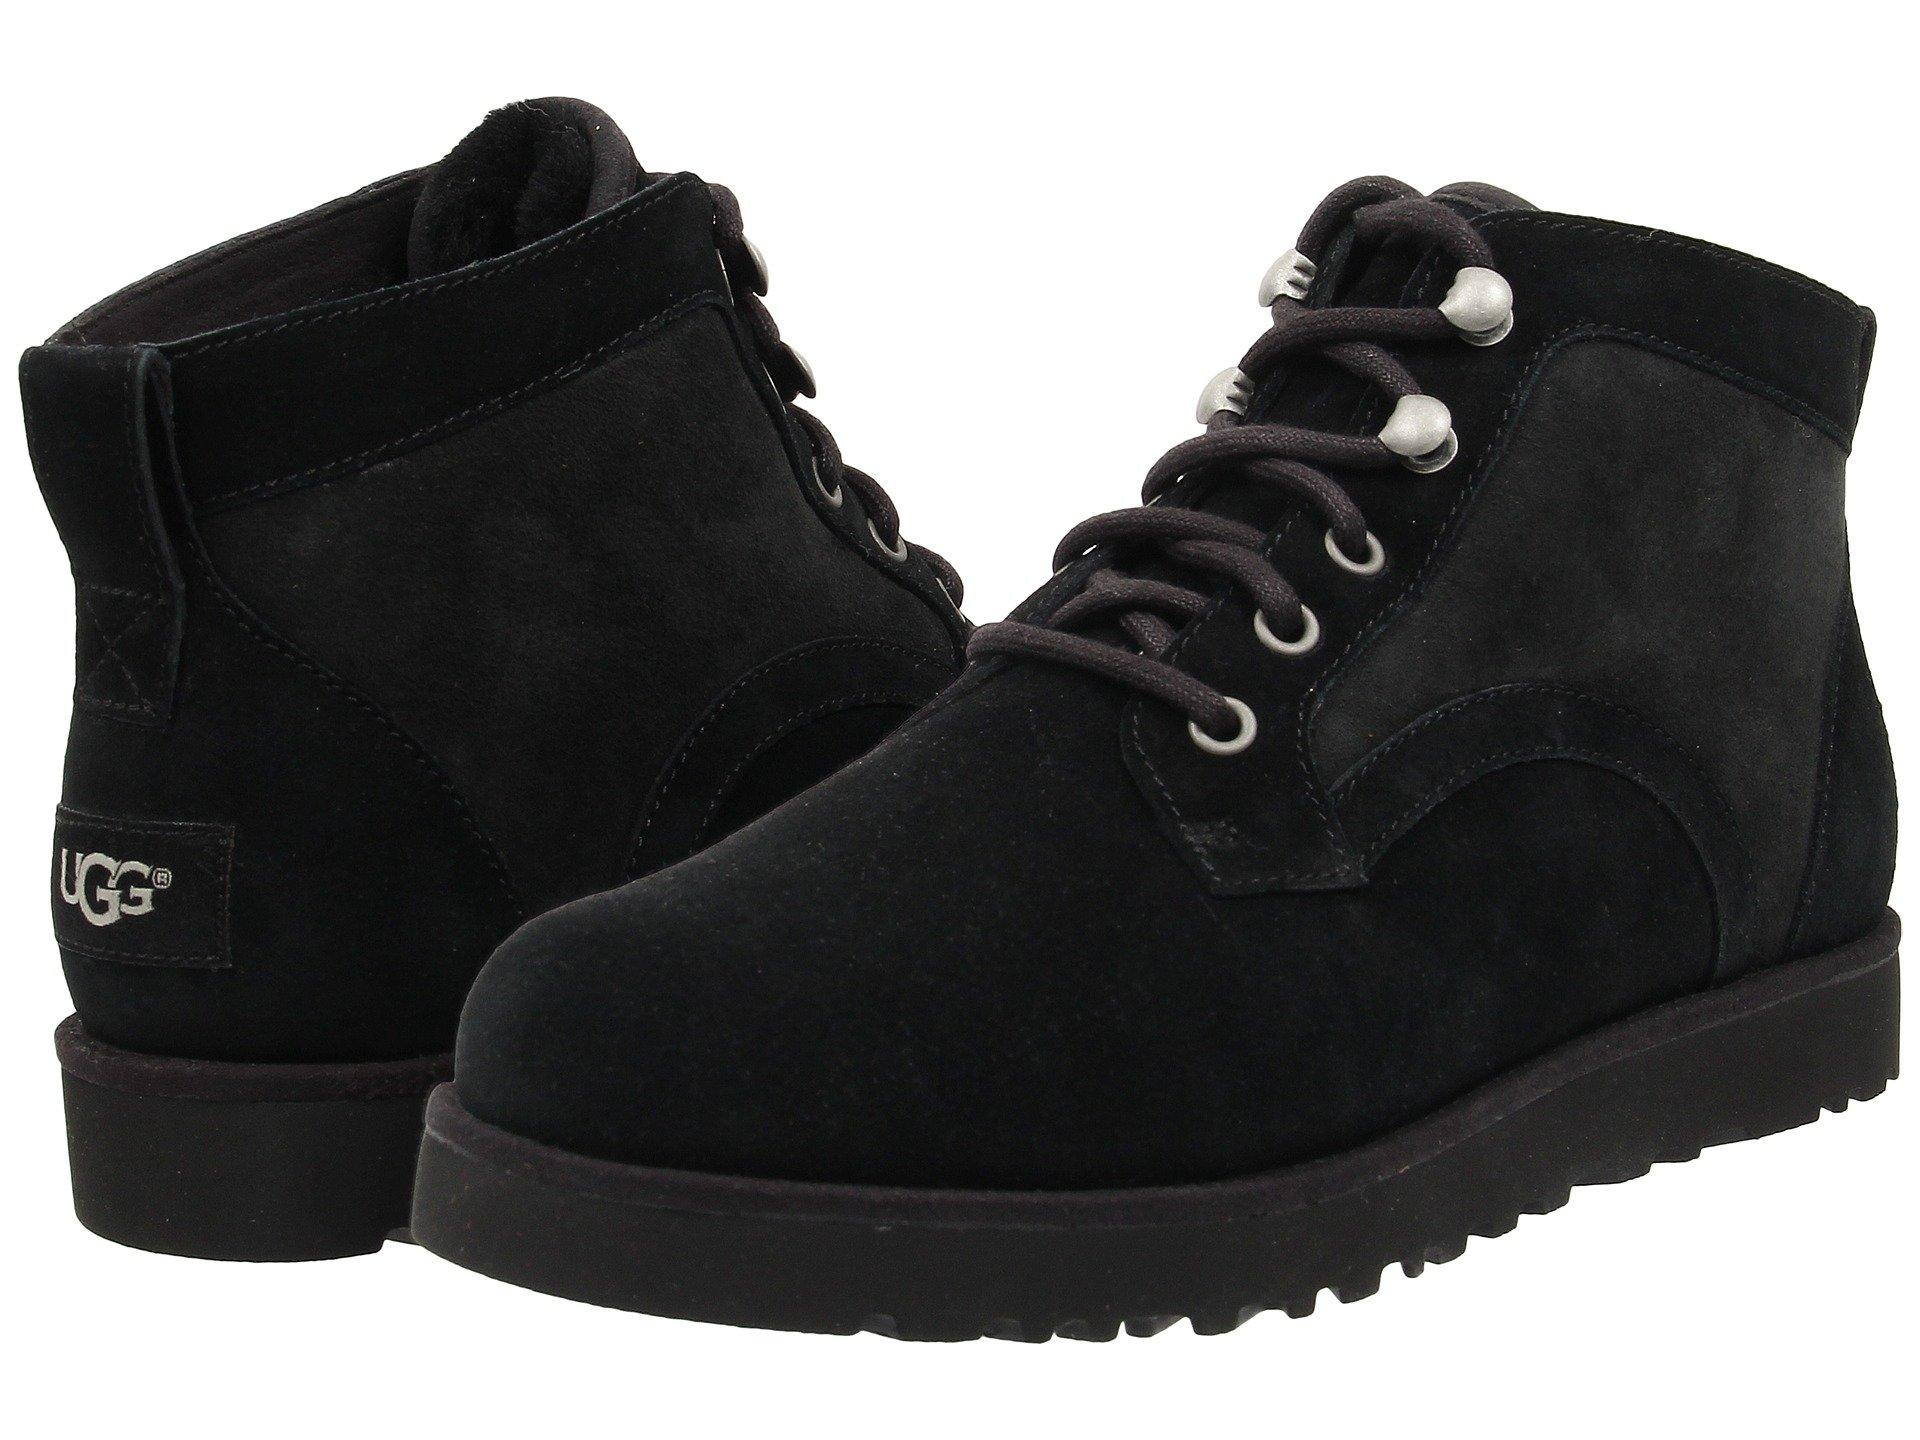 best choice speical offer first look Ugg Bethany In Black | ModeSens